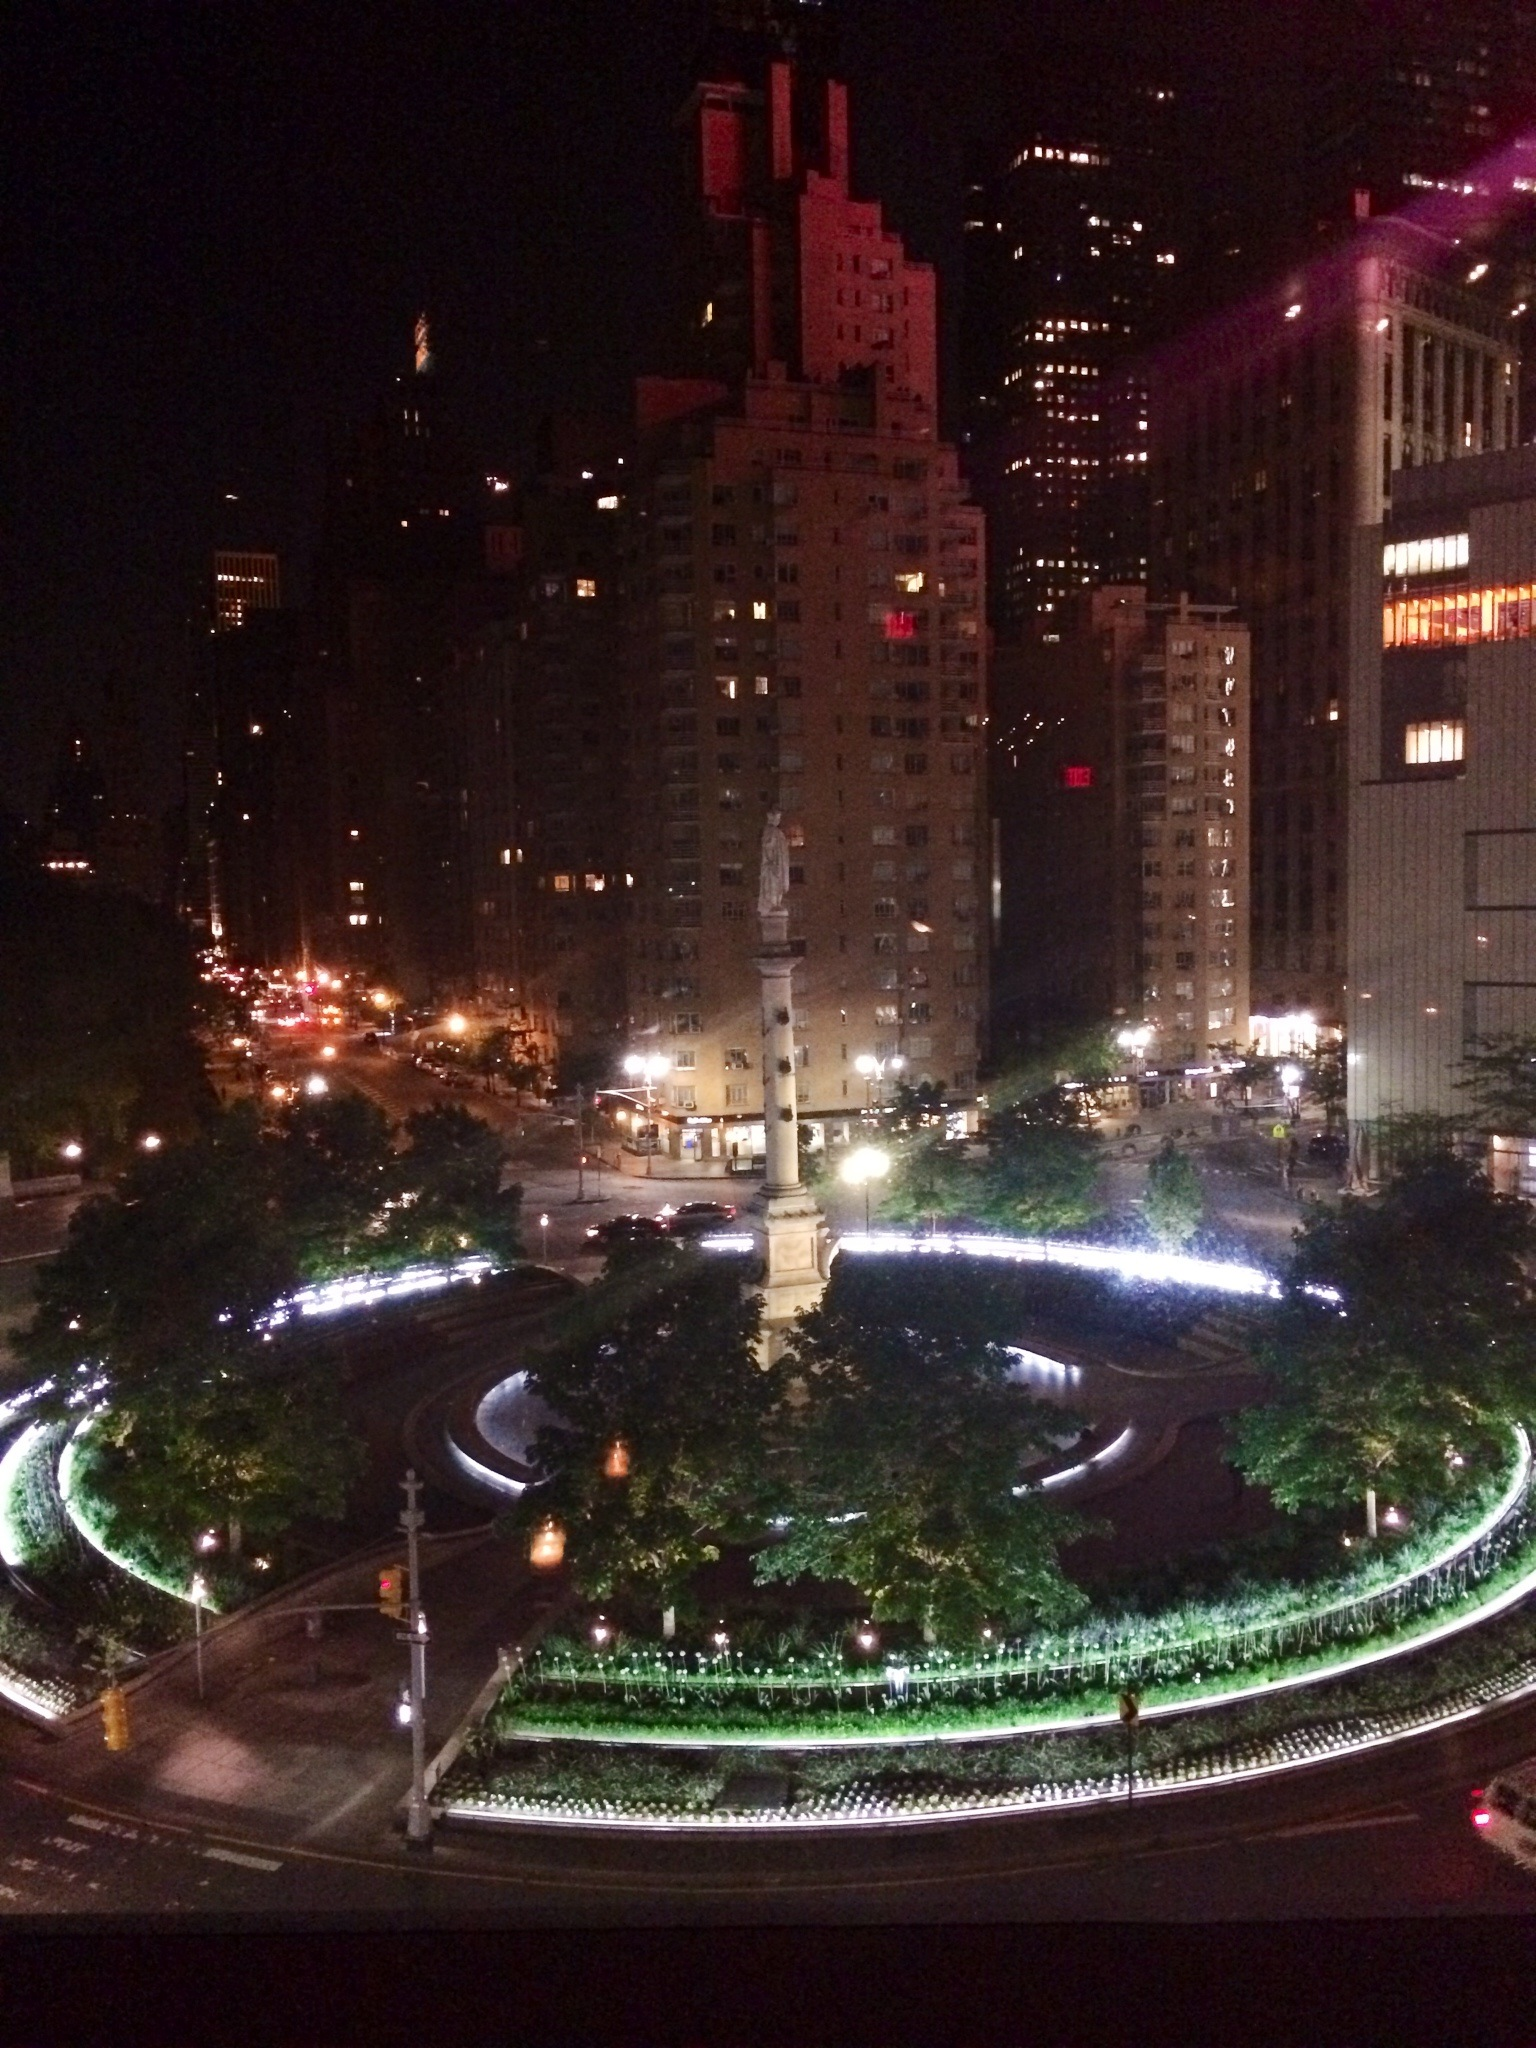 At the Stone Rose Lounge in the Time Warner building. Food and service was crap, but the DJ and view were great.